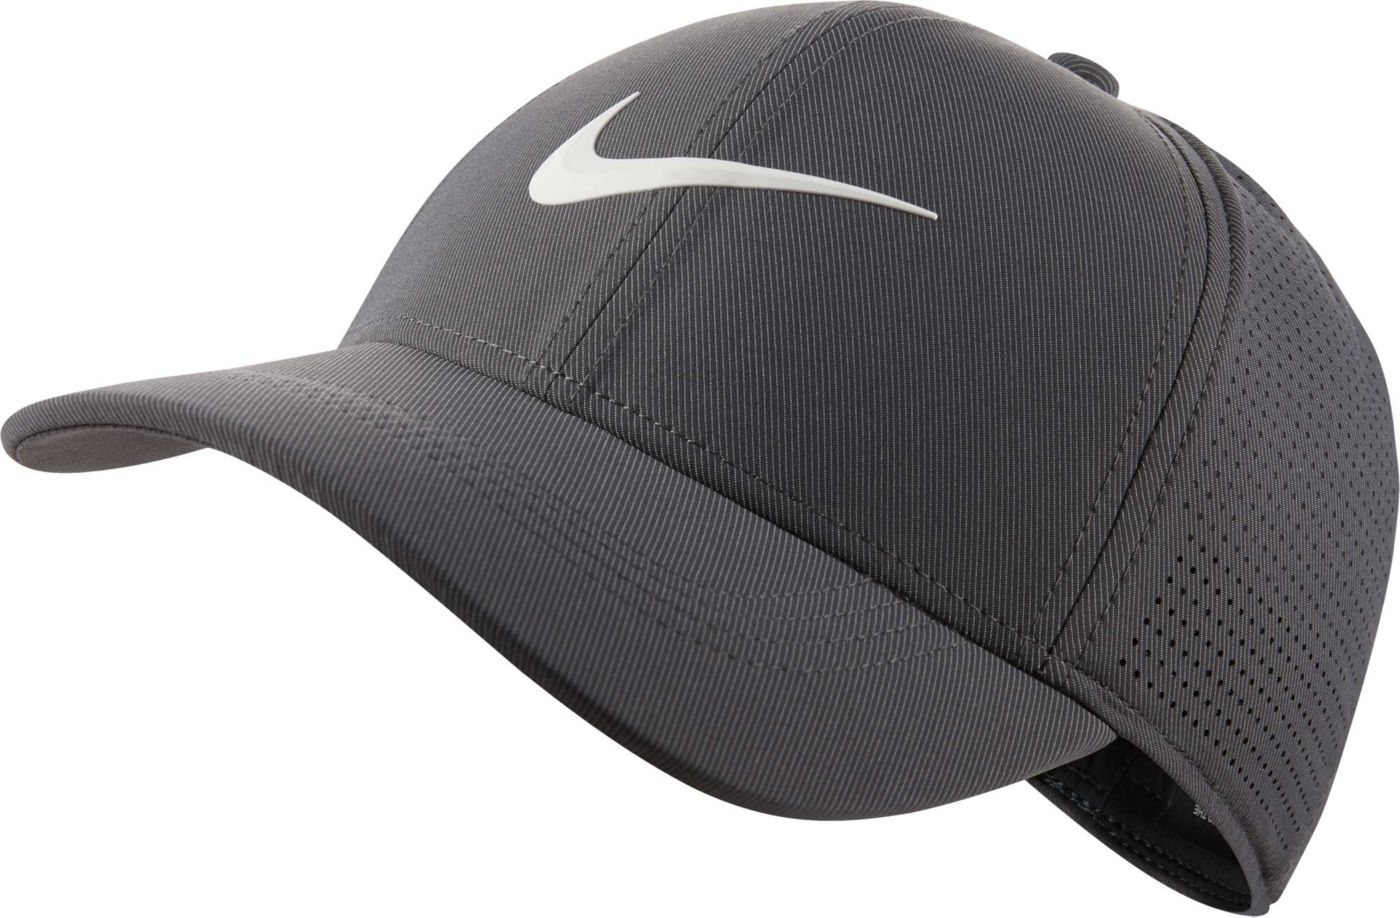 Nike Men's 2018 AeroBill Legacy91 Perforated Golf Hat